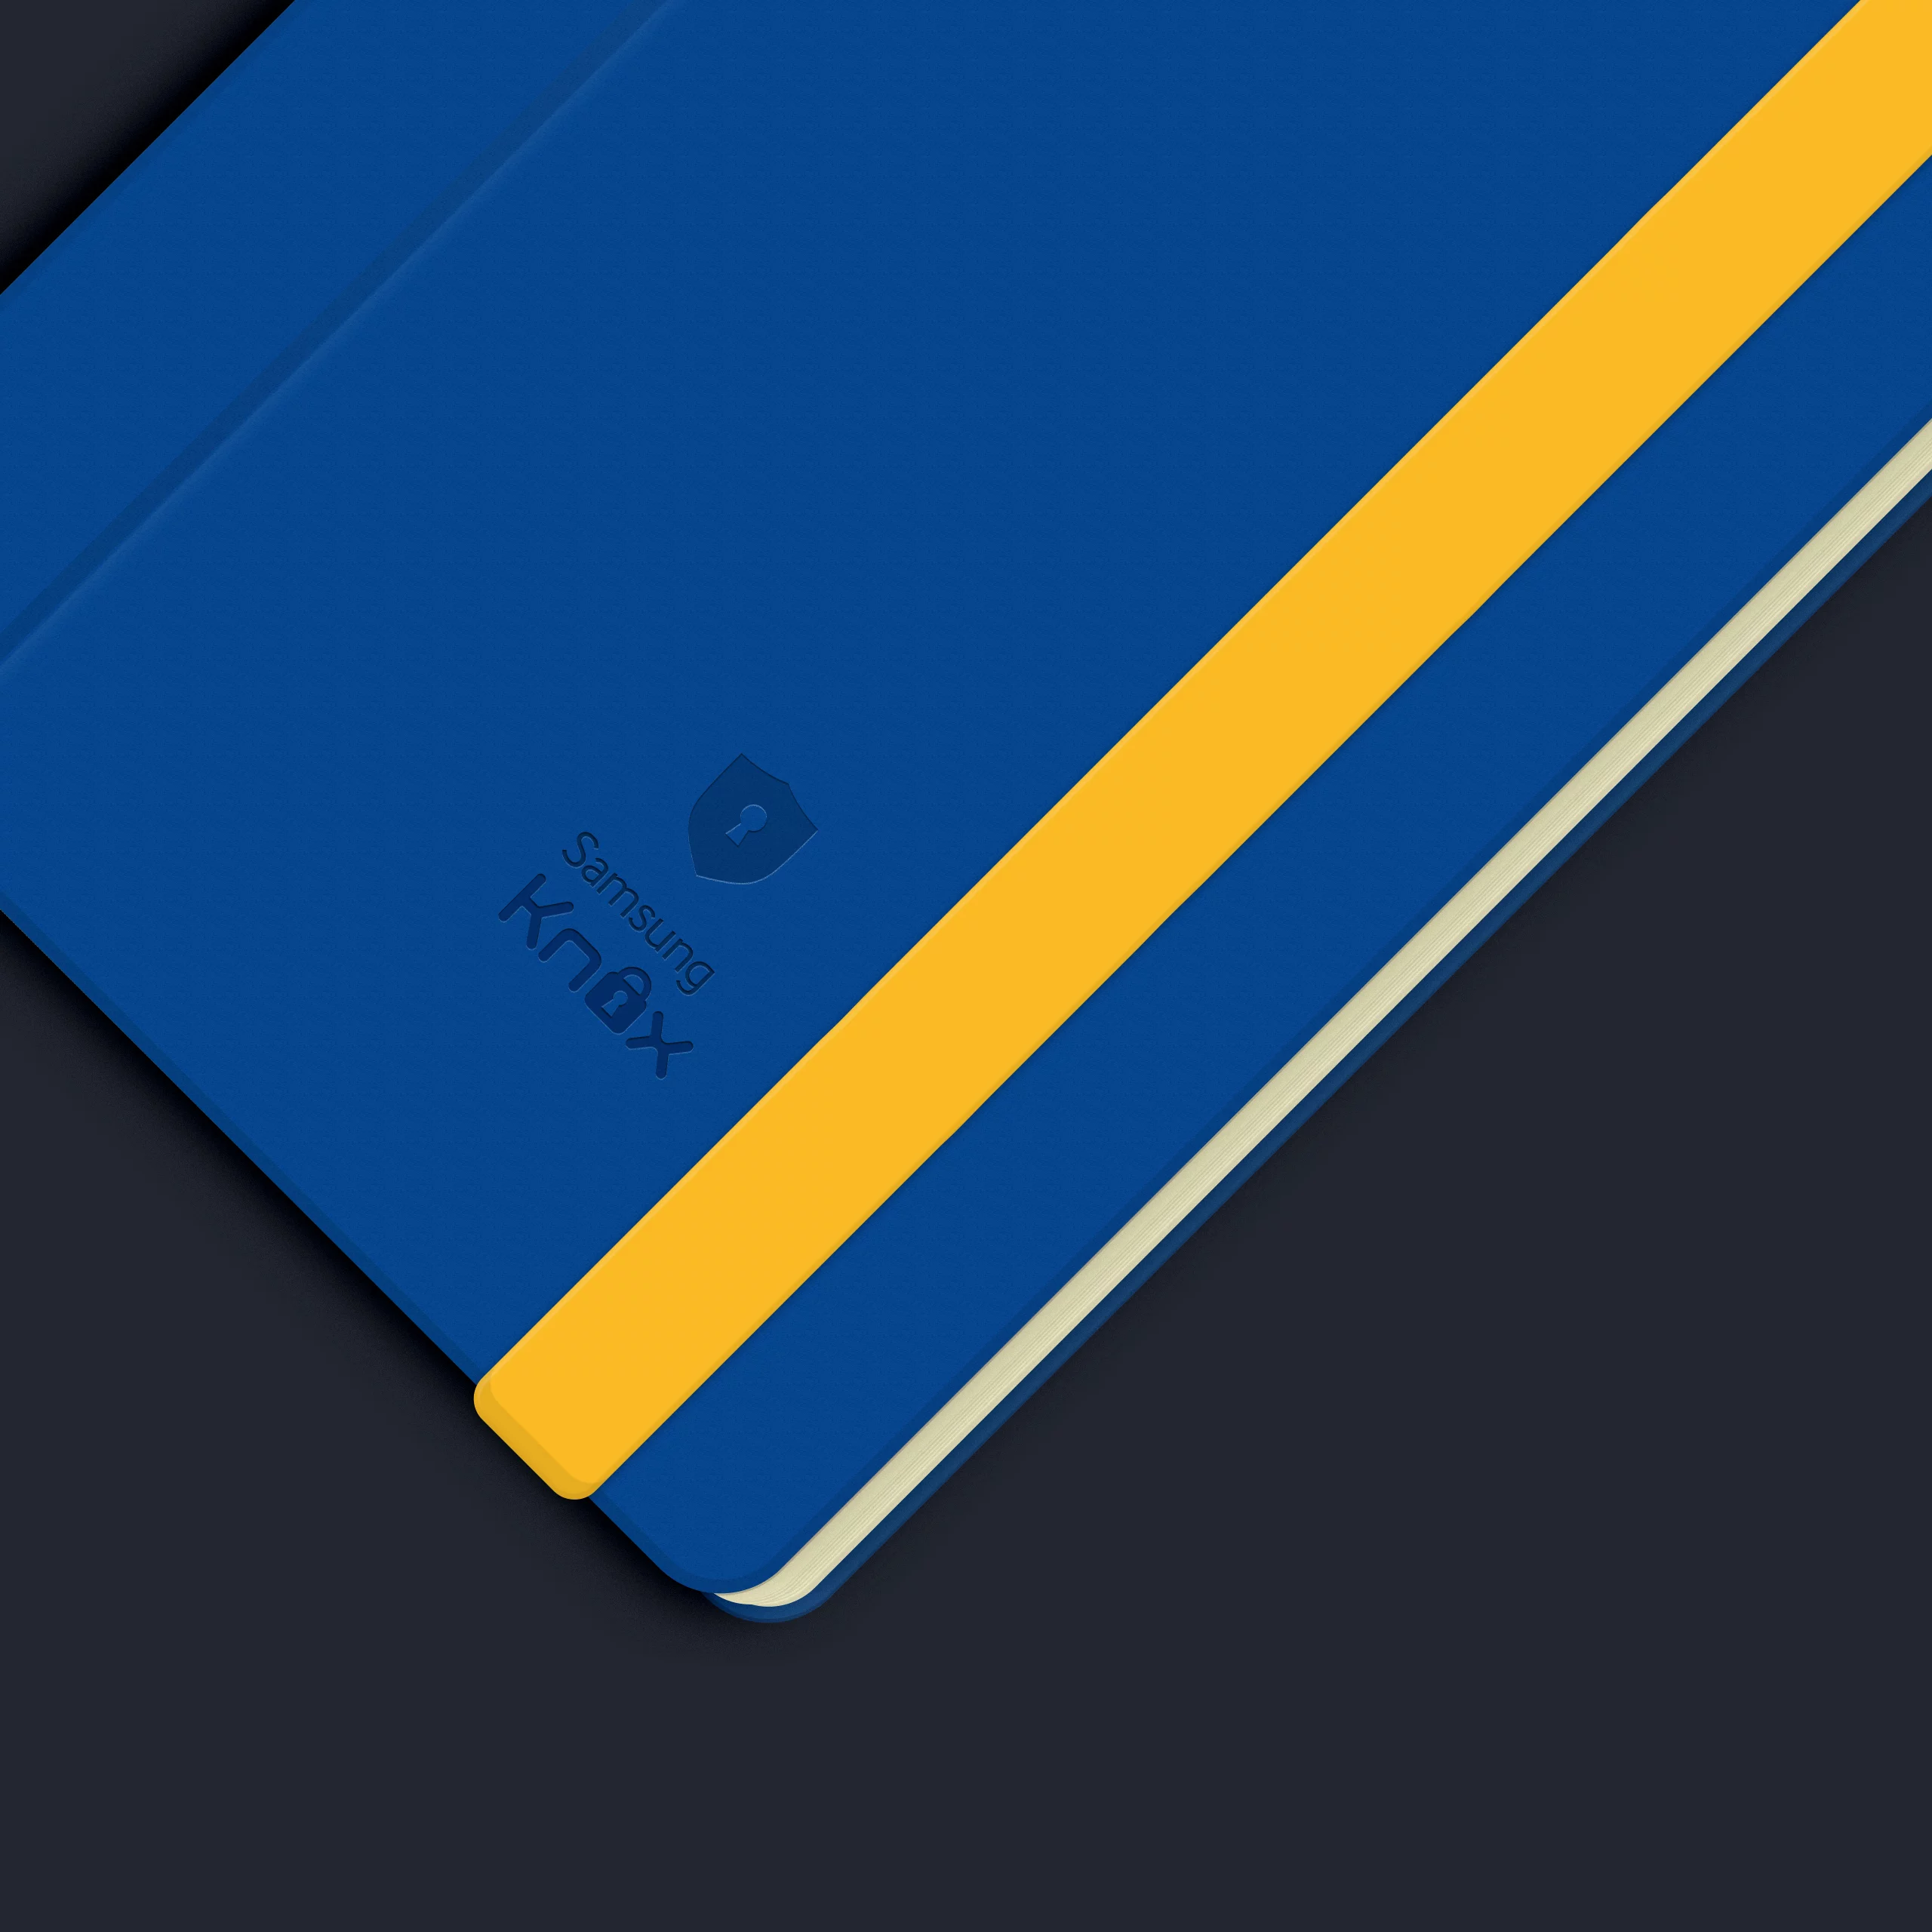 Galaxy S6 wallpapers (8/12) Wallpapers